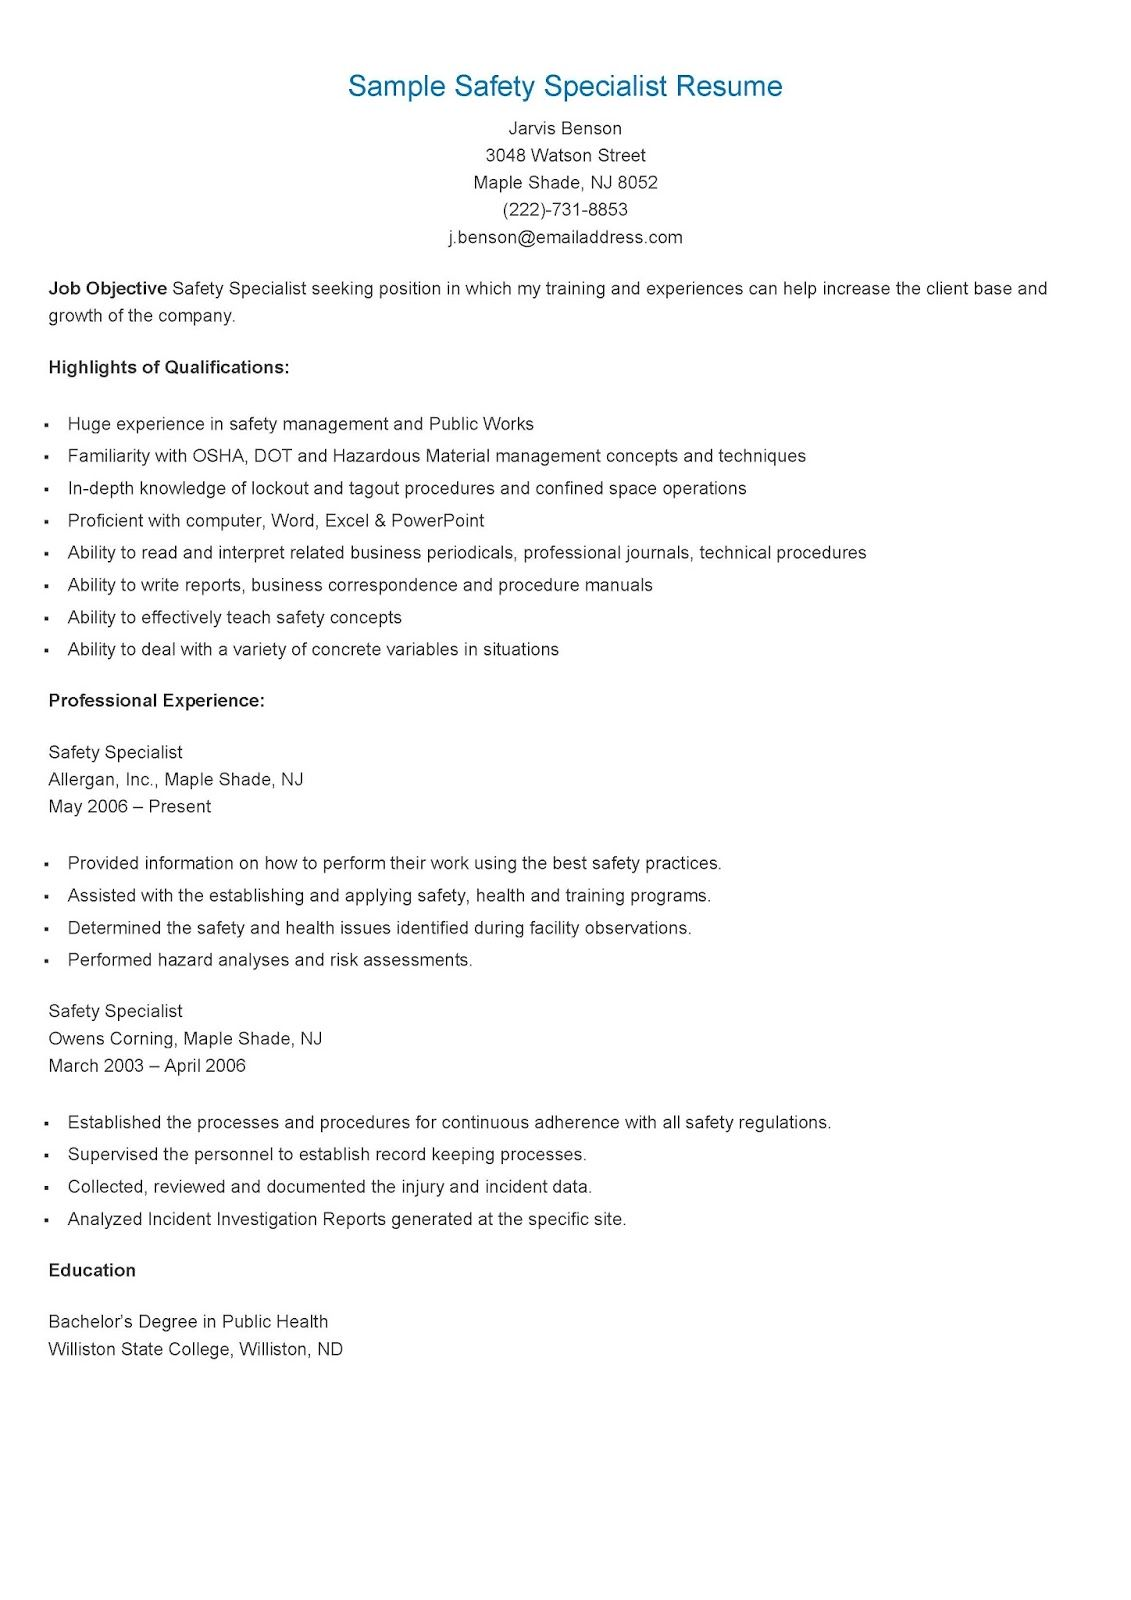 Sample Safety Specialist Resume